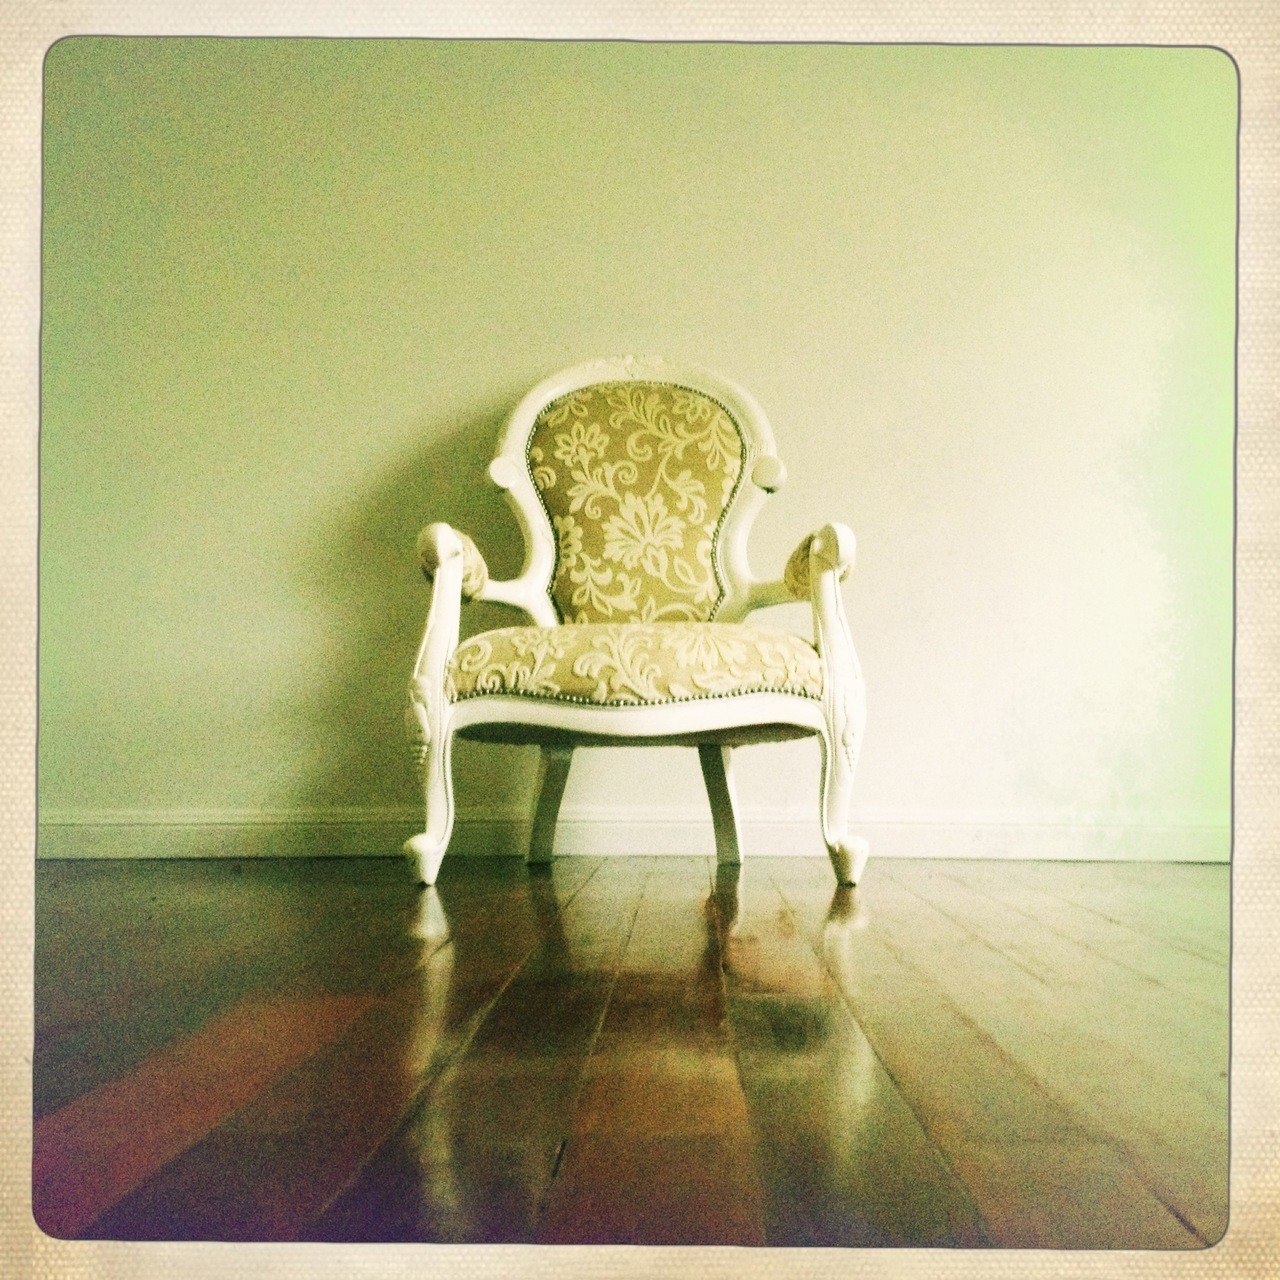 Take a seat Melodie Lens, Ina's 1969 Film, No Flash, Taken with Hipstamatic